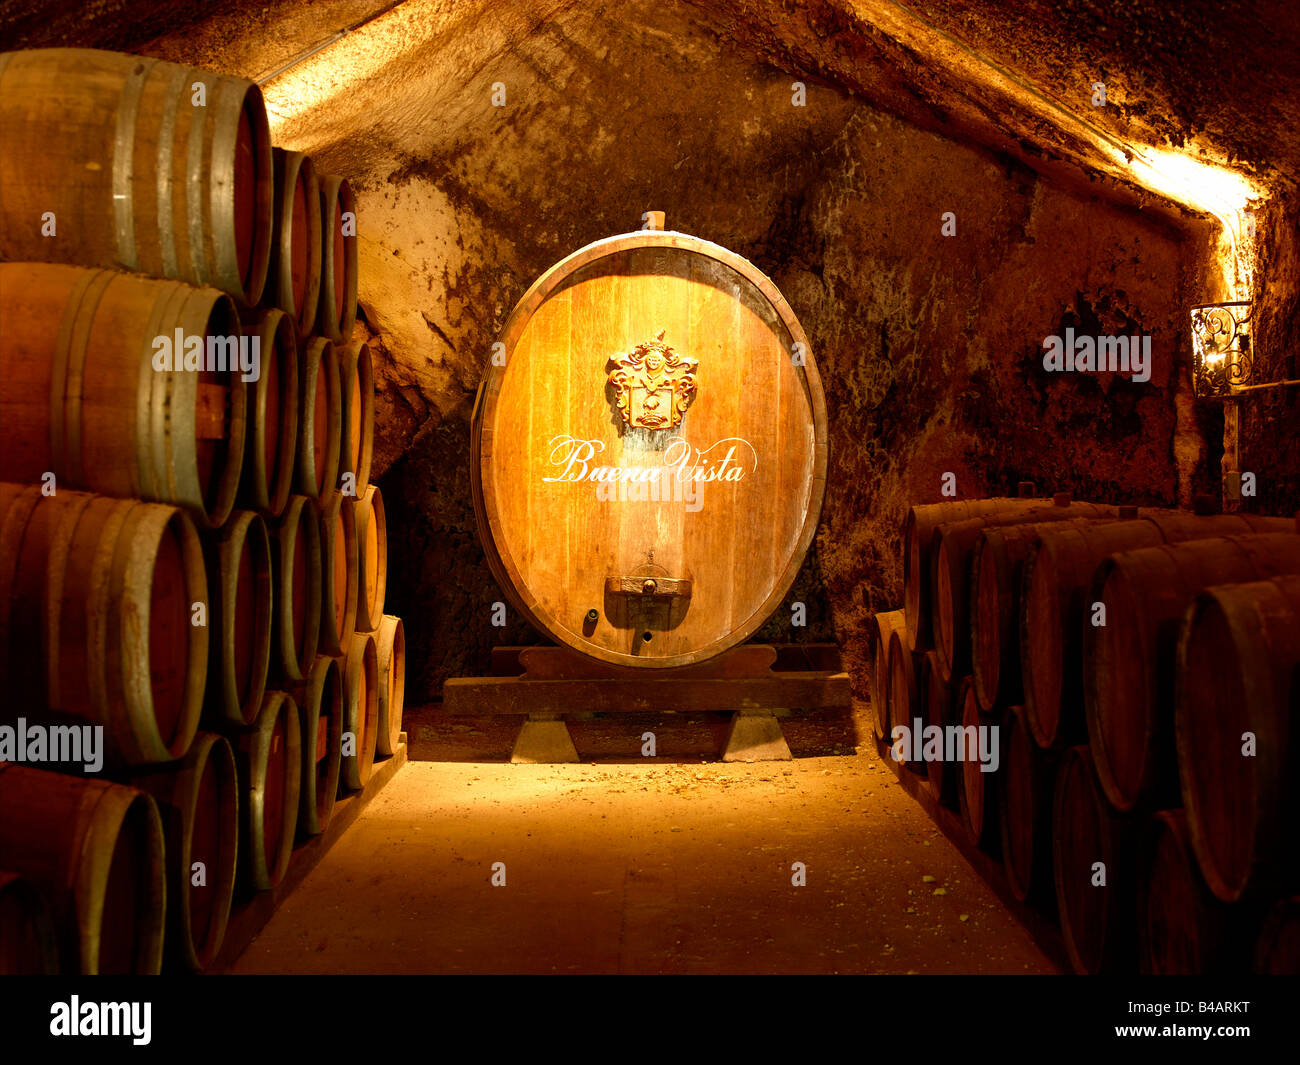 First Wine Celler & Vineyard, California Buena Vista - Stock Image